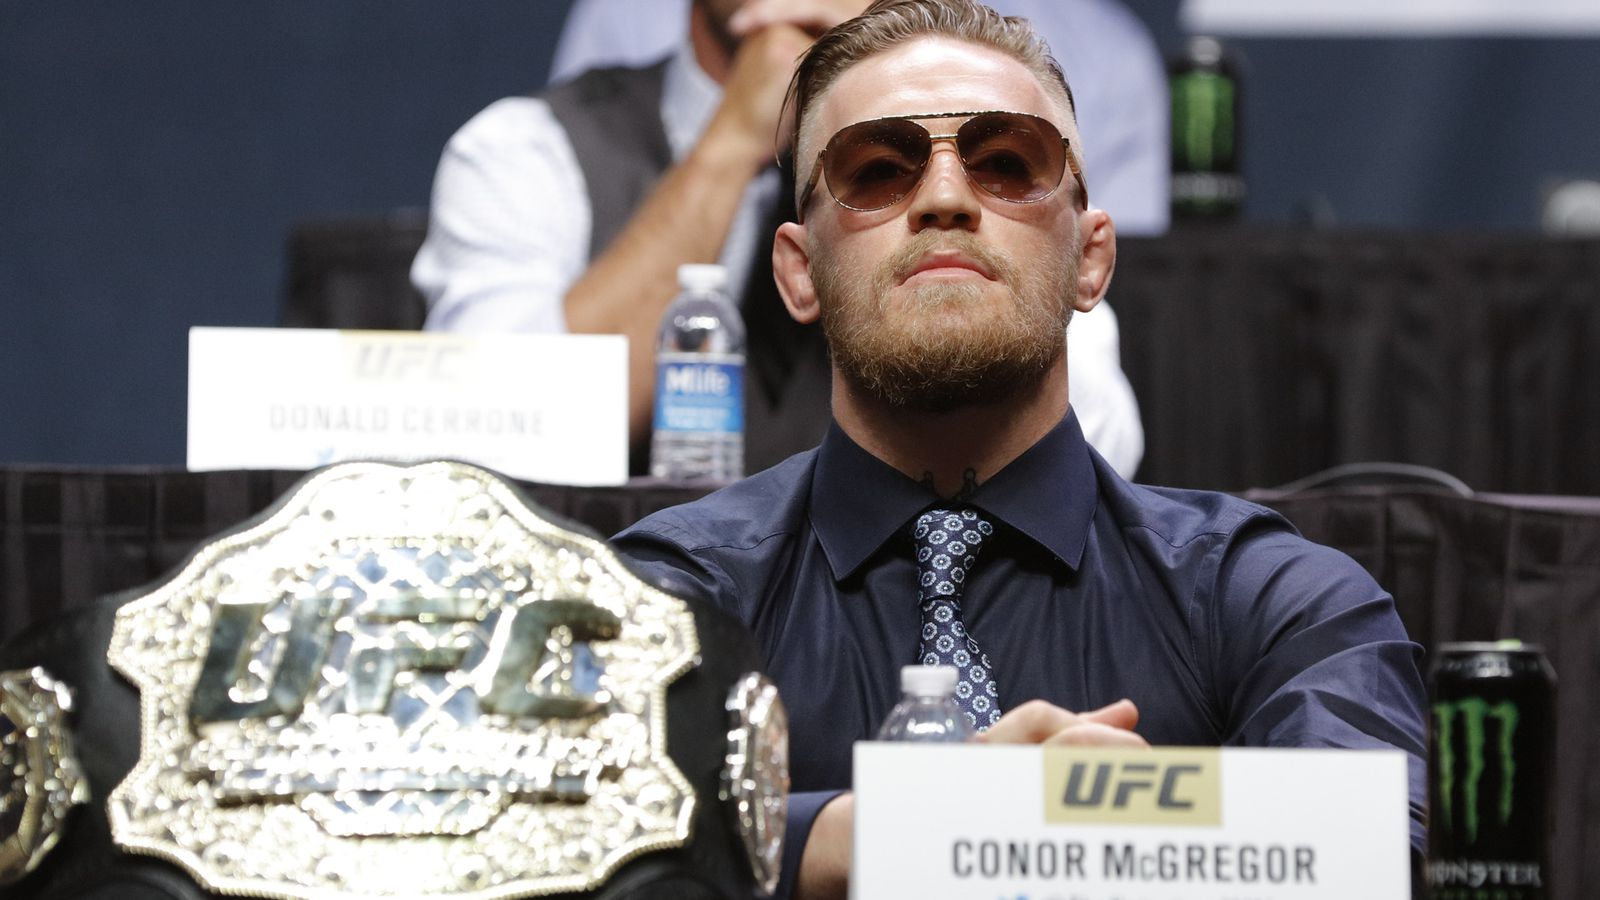 With McGregor, going big is the only way he knows